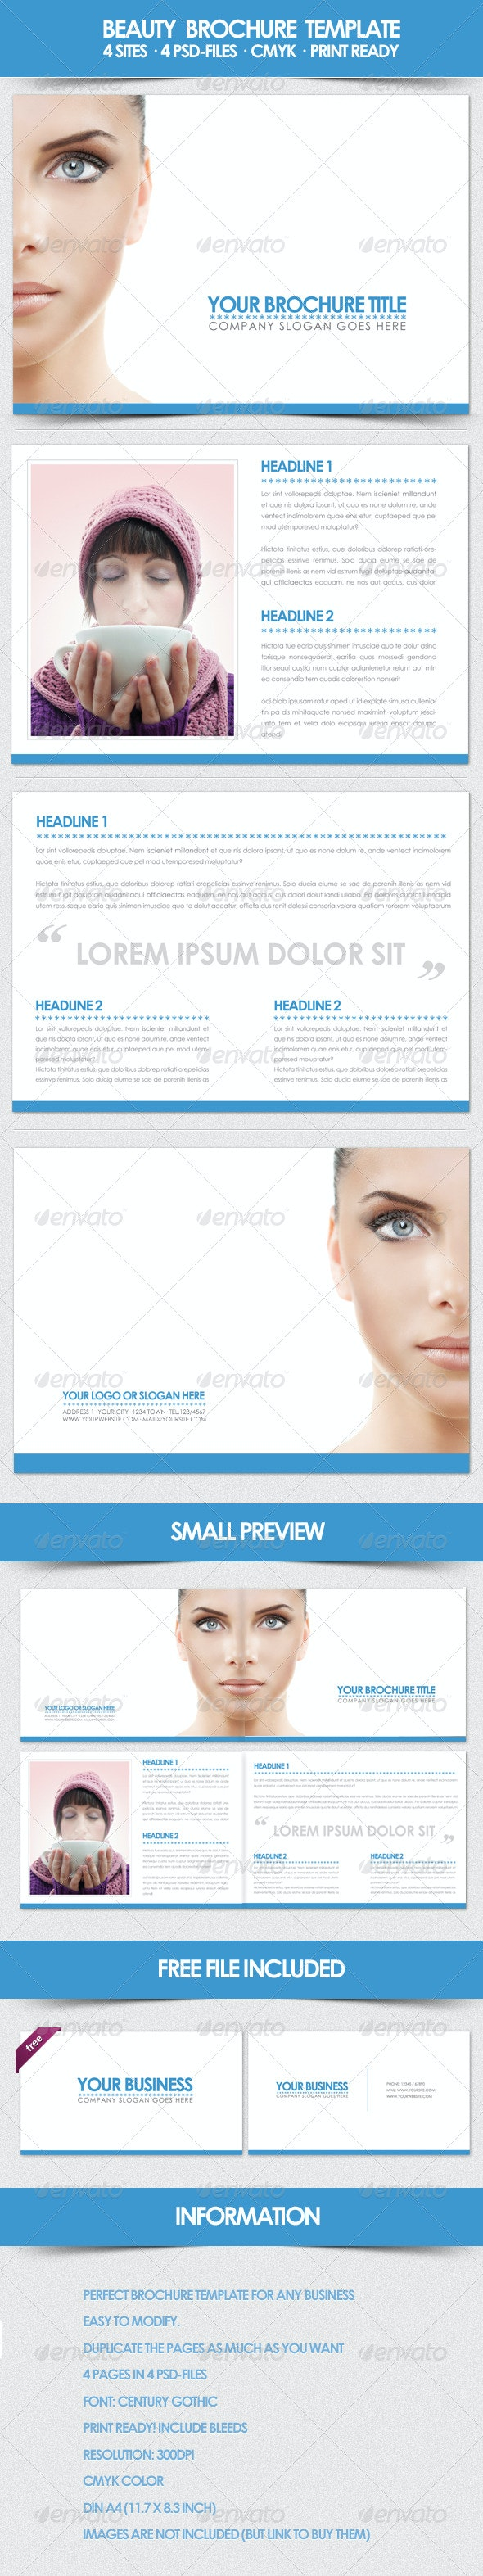 Beauty Brochure Template - Corporate Brochures